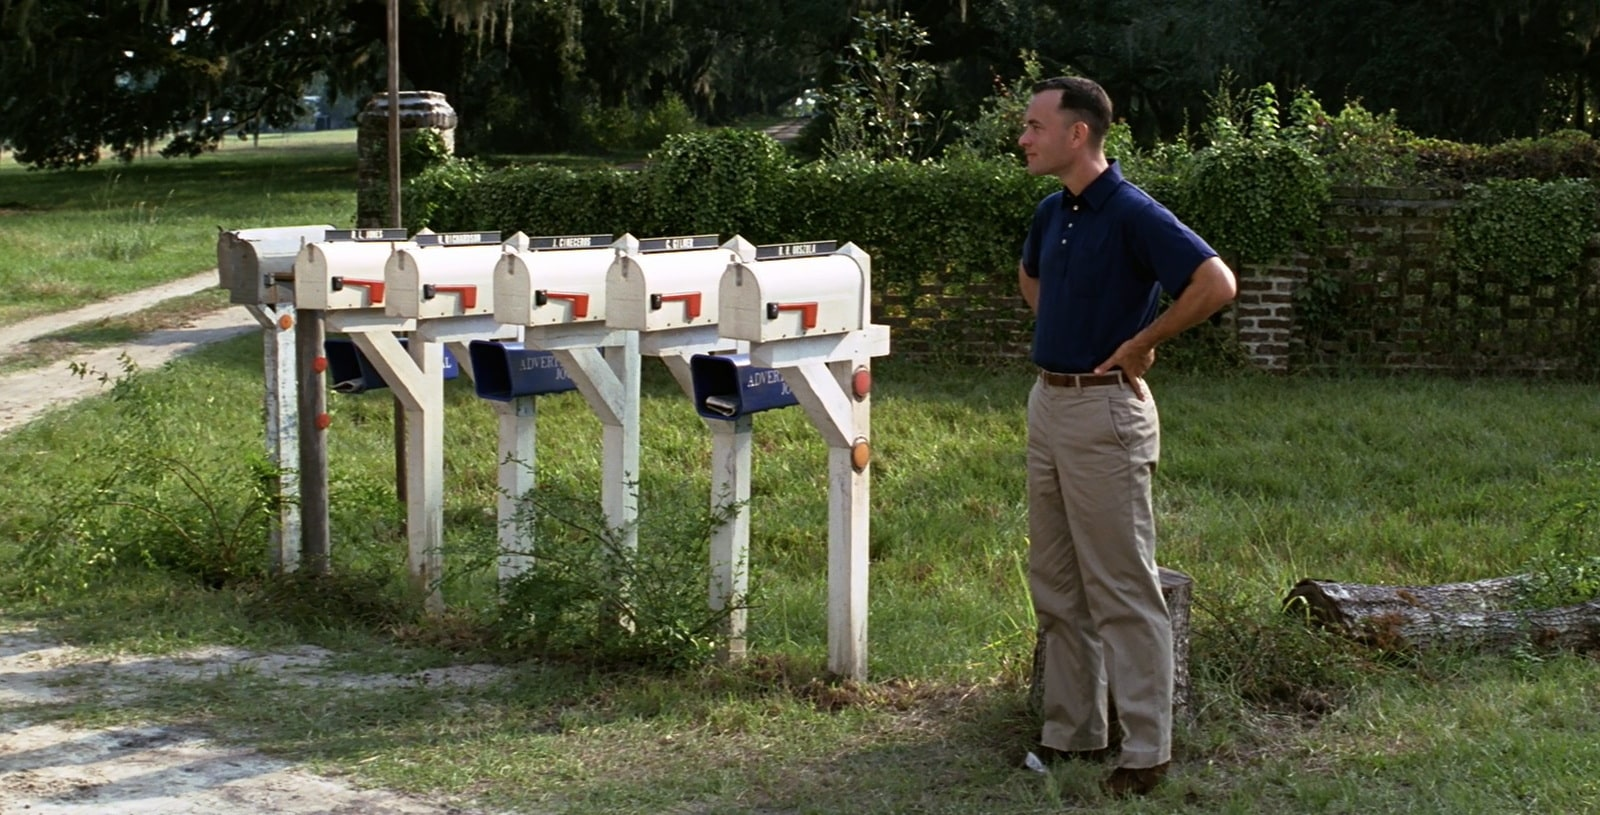 Forrest Gump: a power of being himself